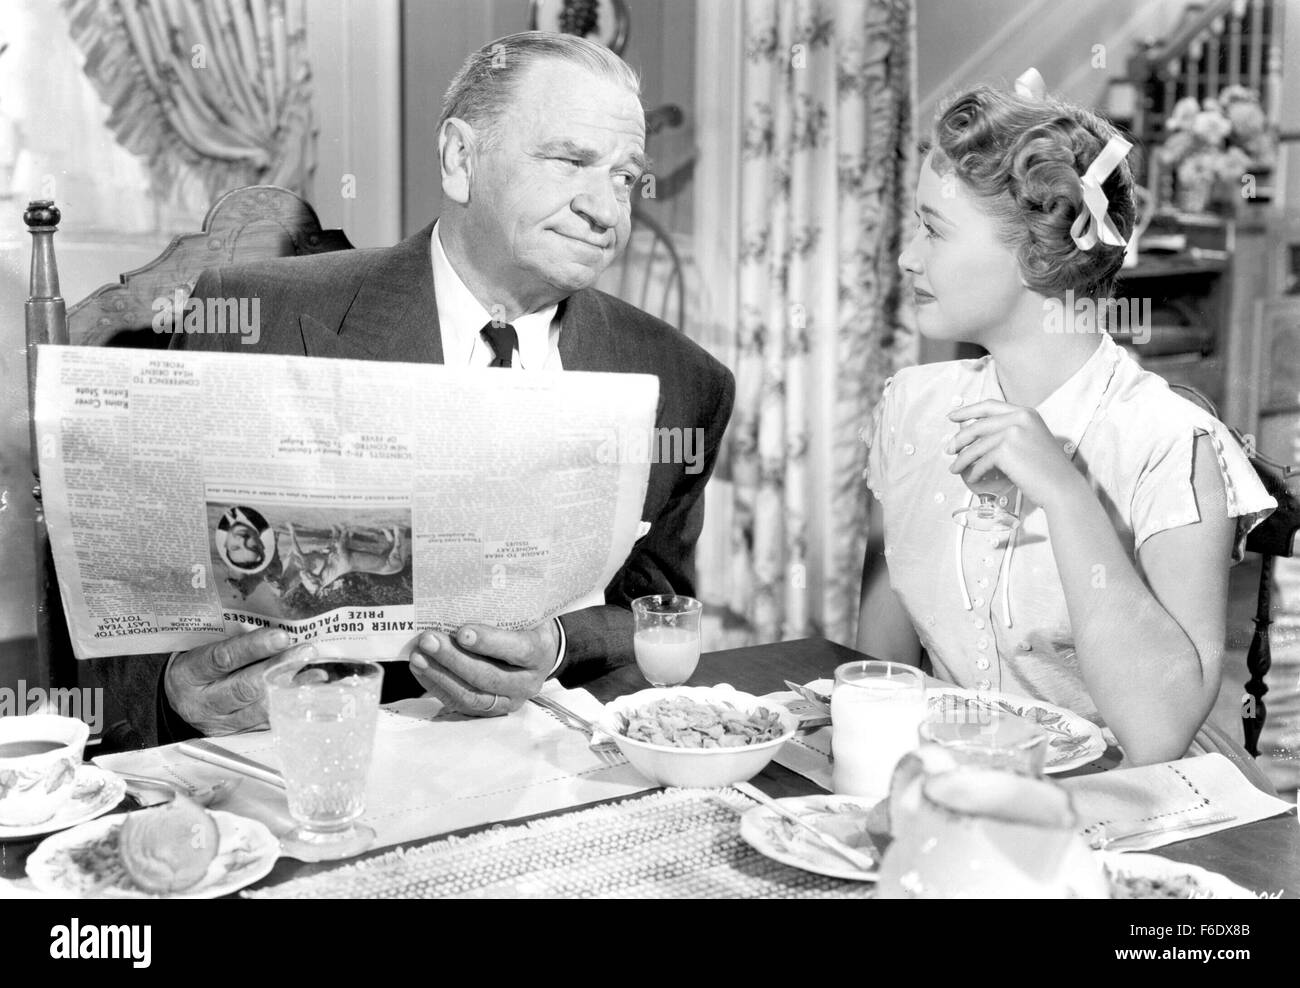 Wallace Beery Black and White Stock Photos   Images - Page 3 - Alamy 09429acb33d